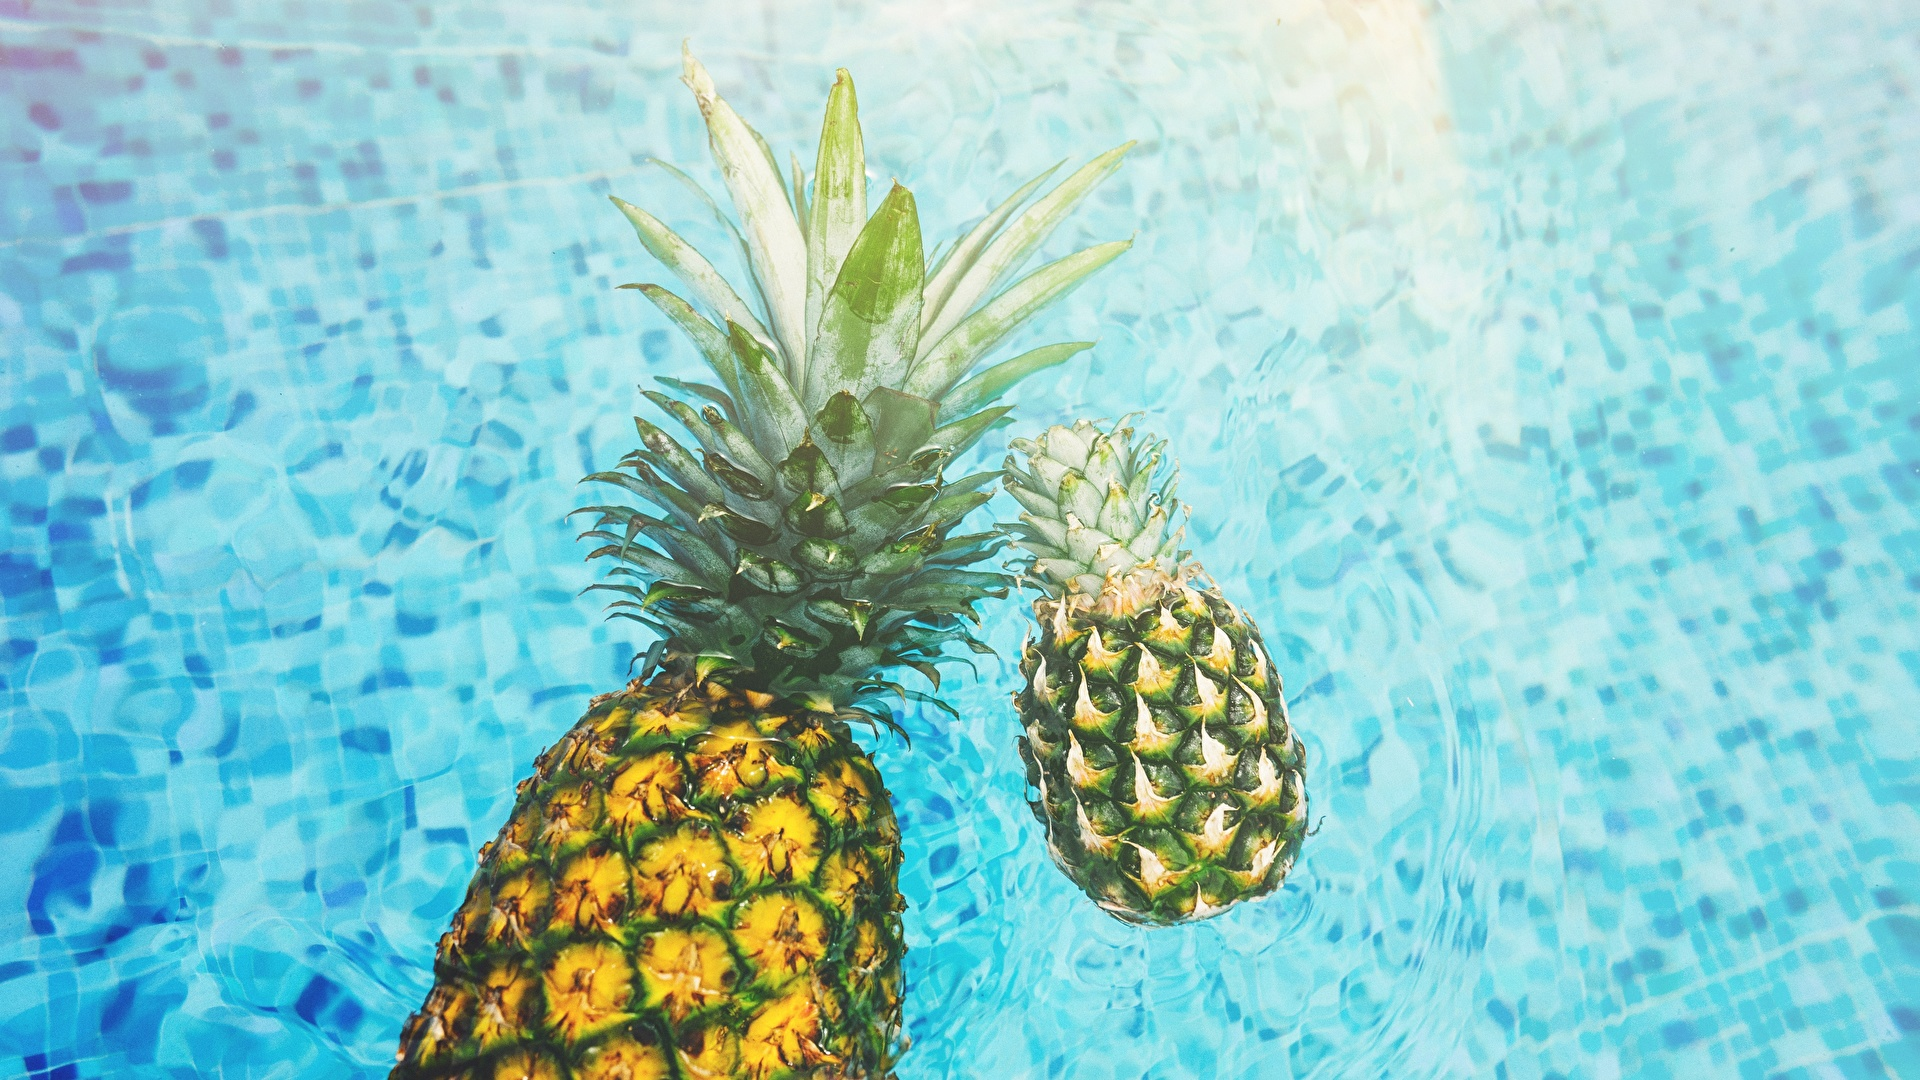 +90 The Awesome Pineapple Fruit Wallpaper For Desktop